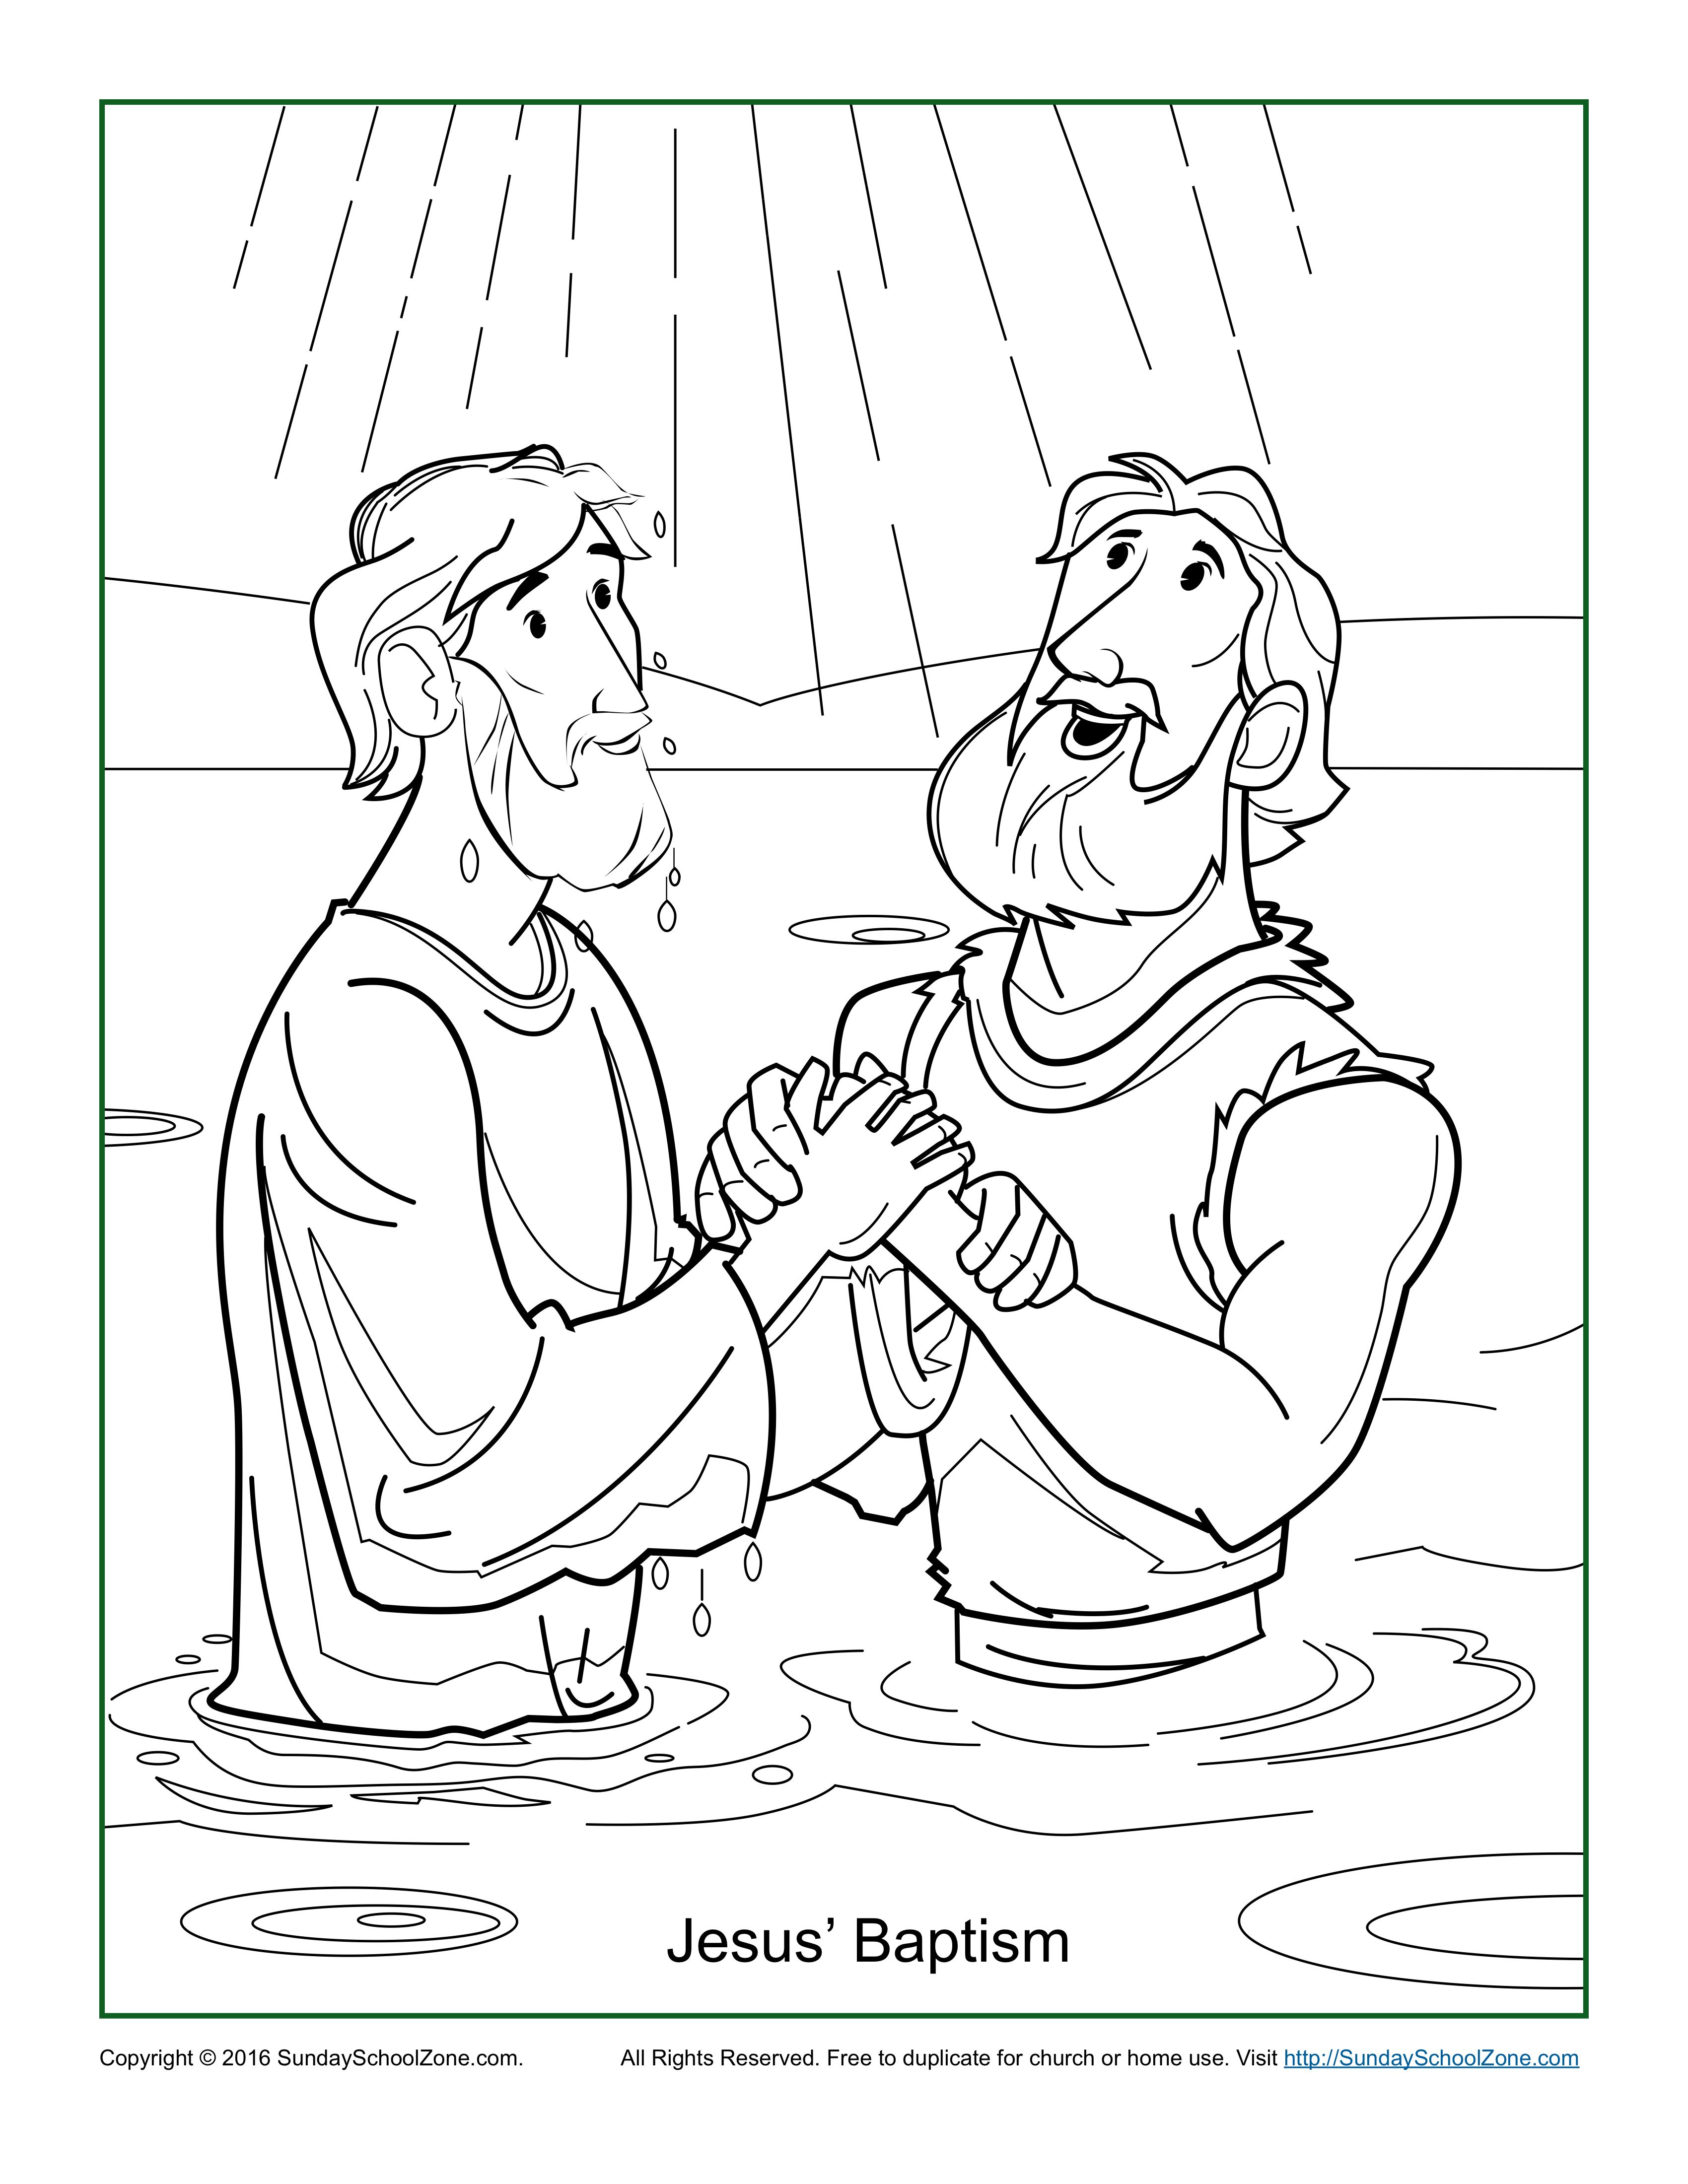 Jesus Baptism Coloring Page Childrens Bible Activities Sunday School Coloring Pages Sunday School Activities